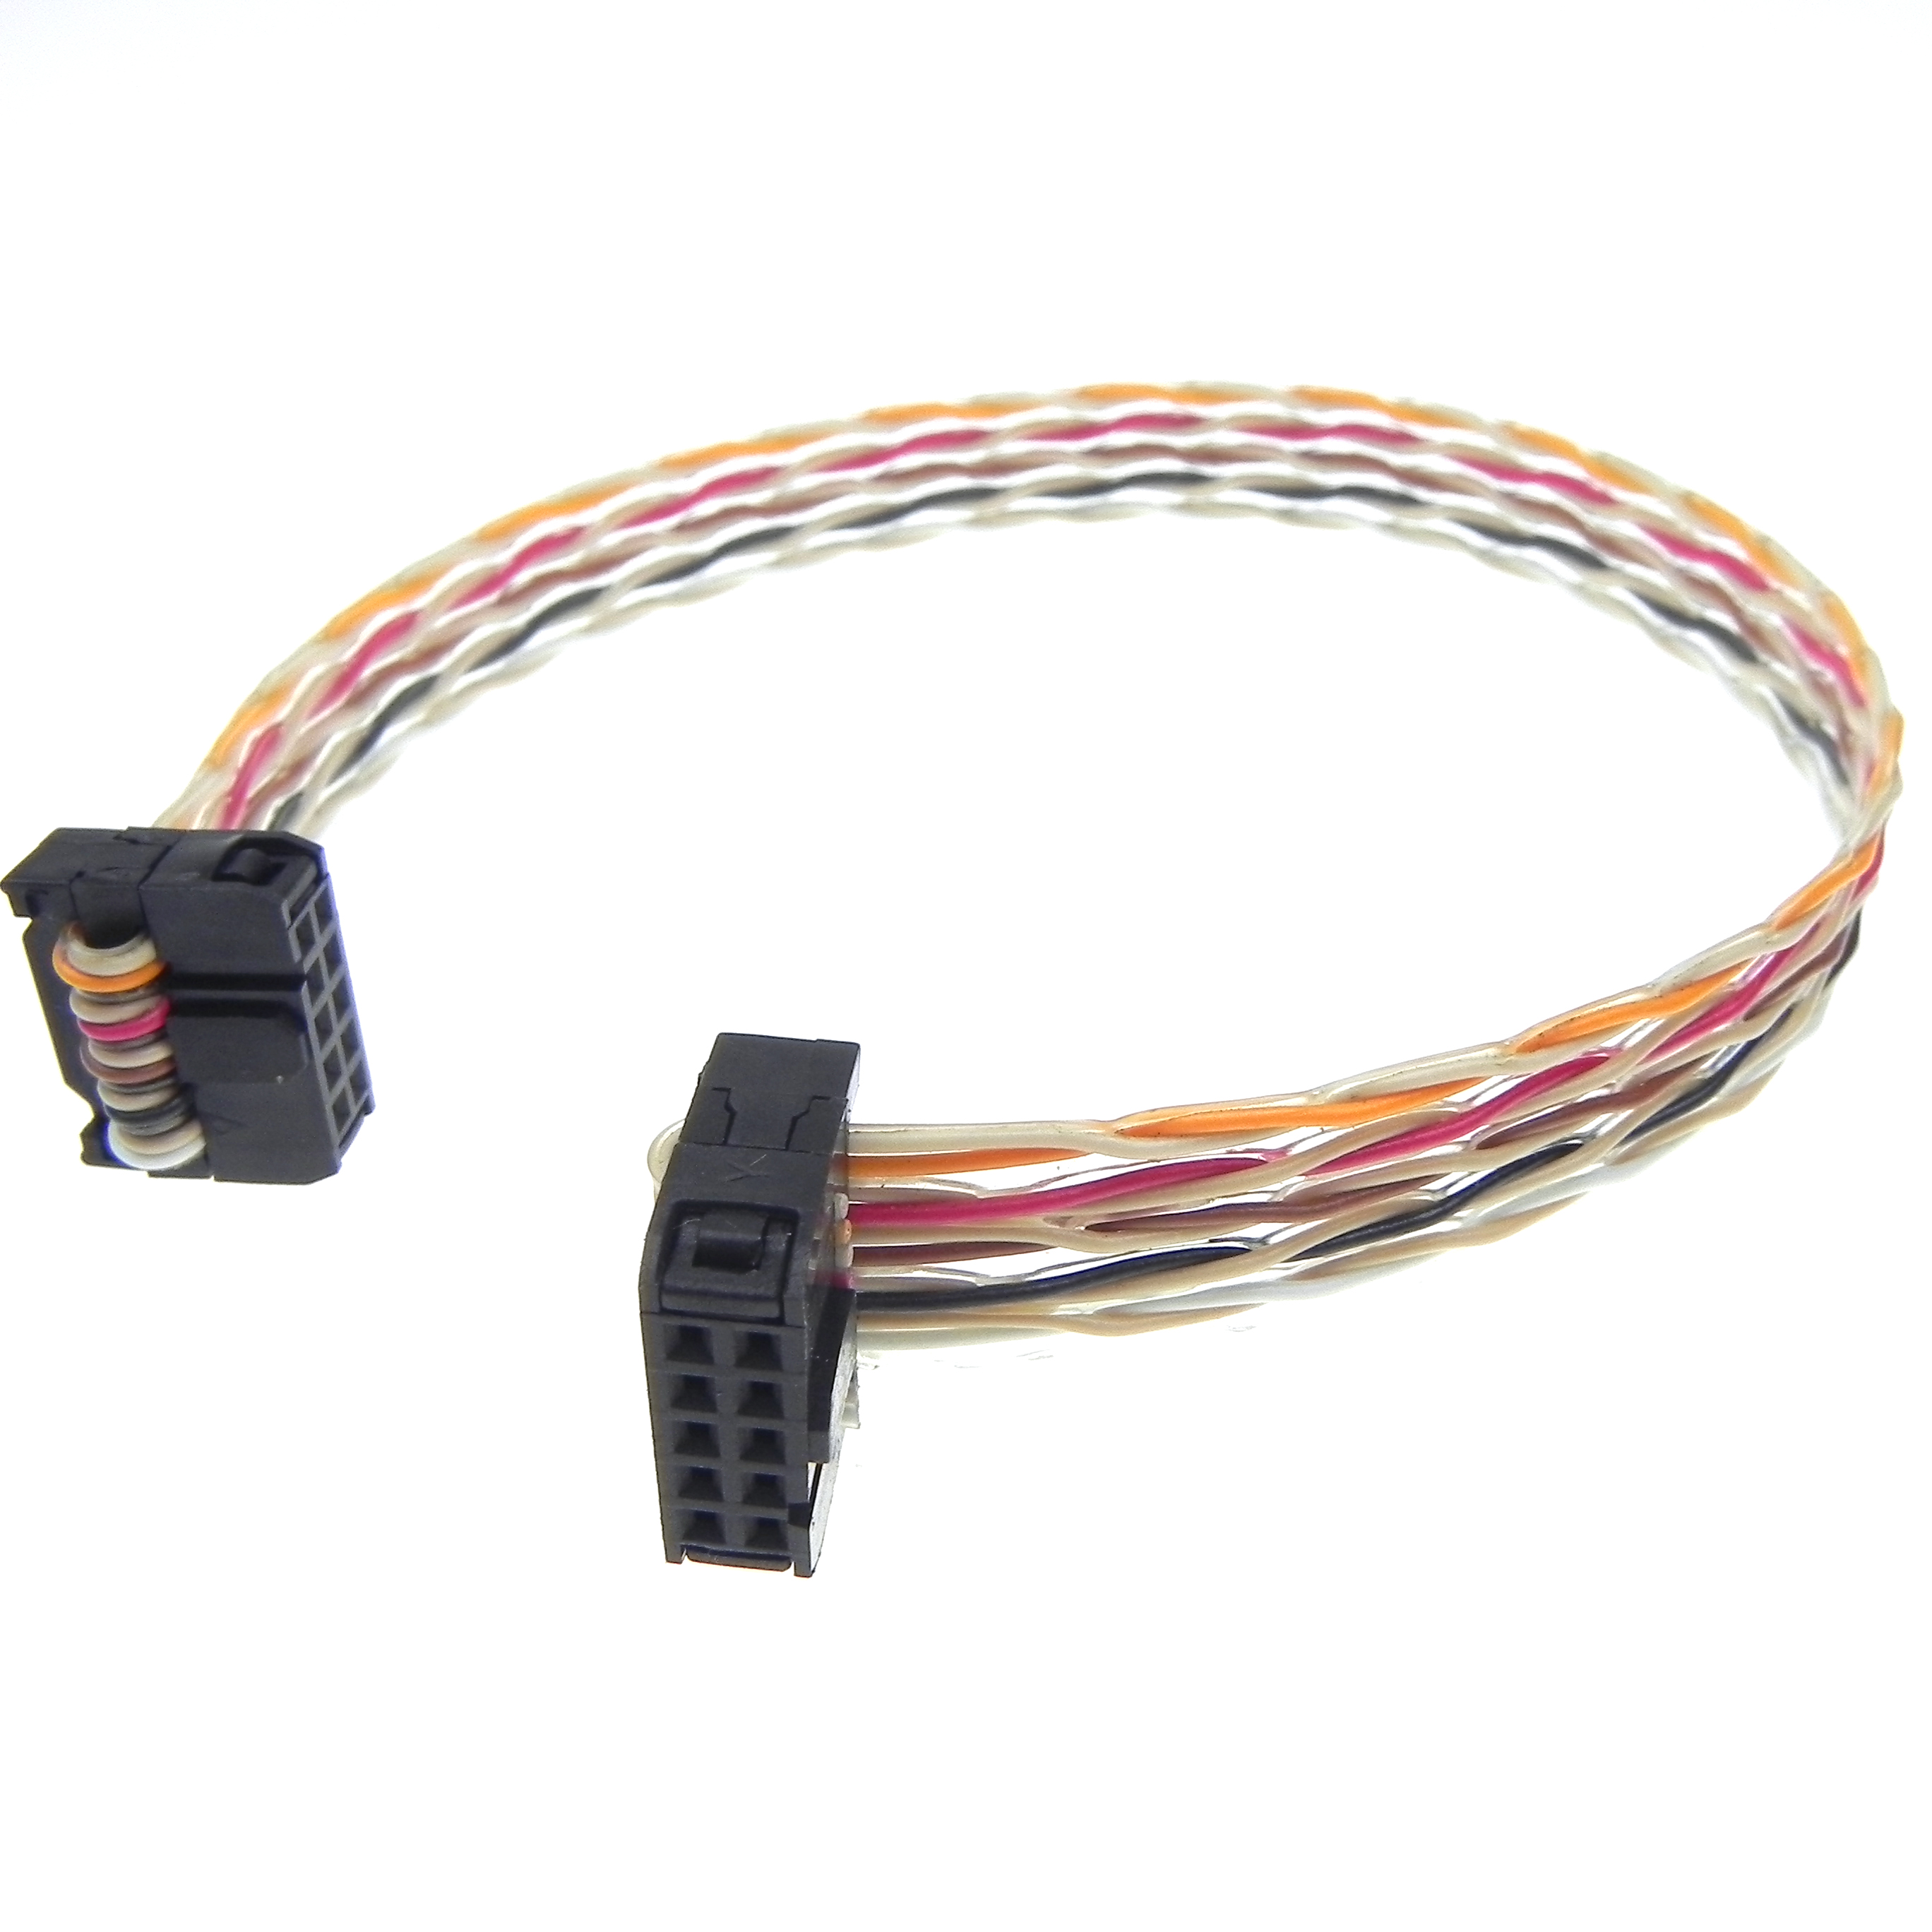 Customised twisted pair IDC cable